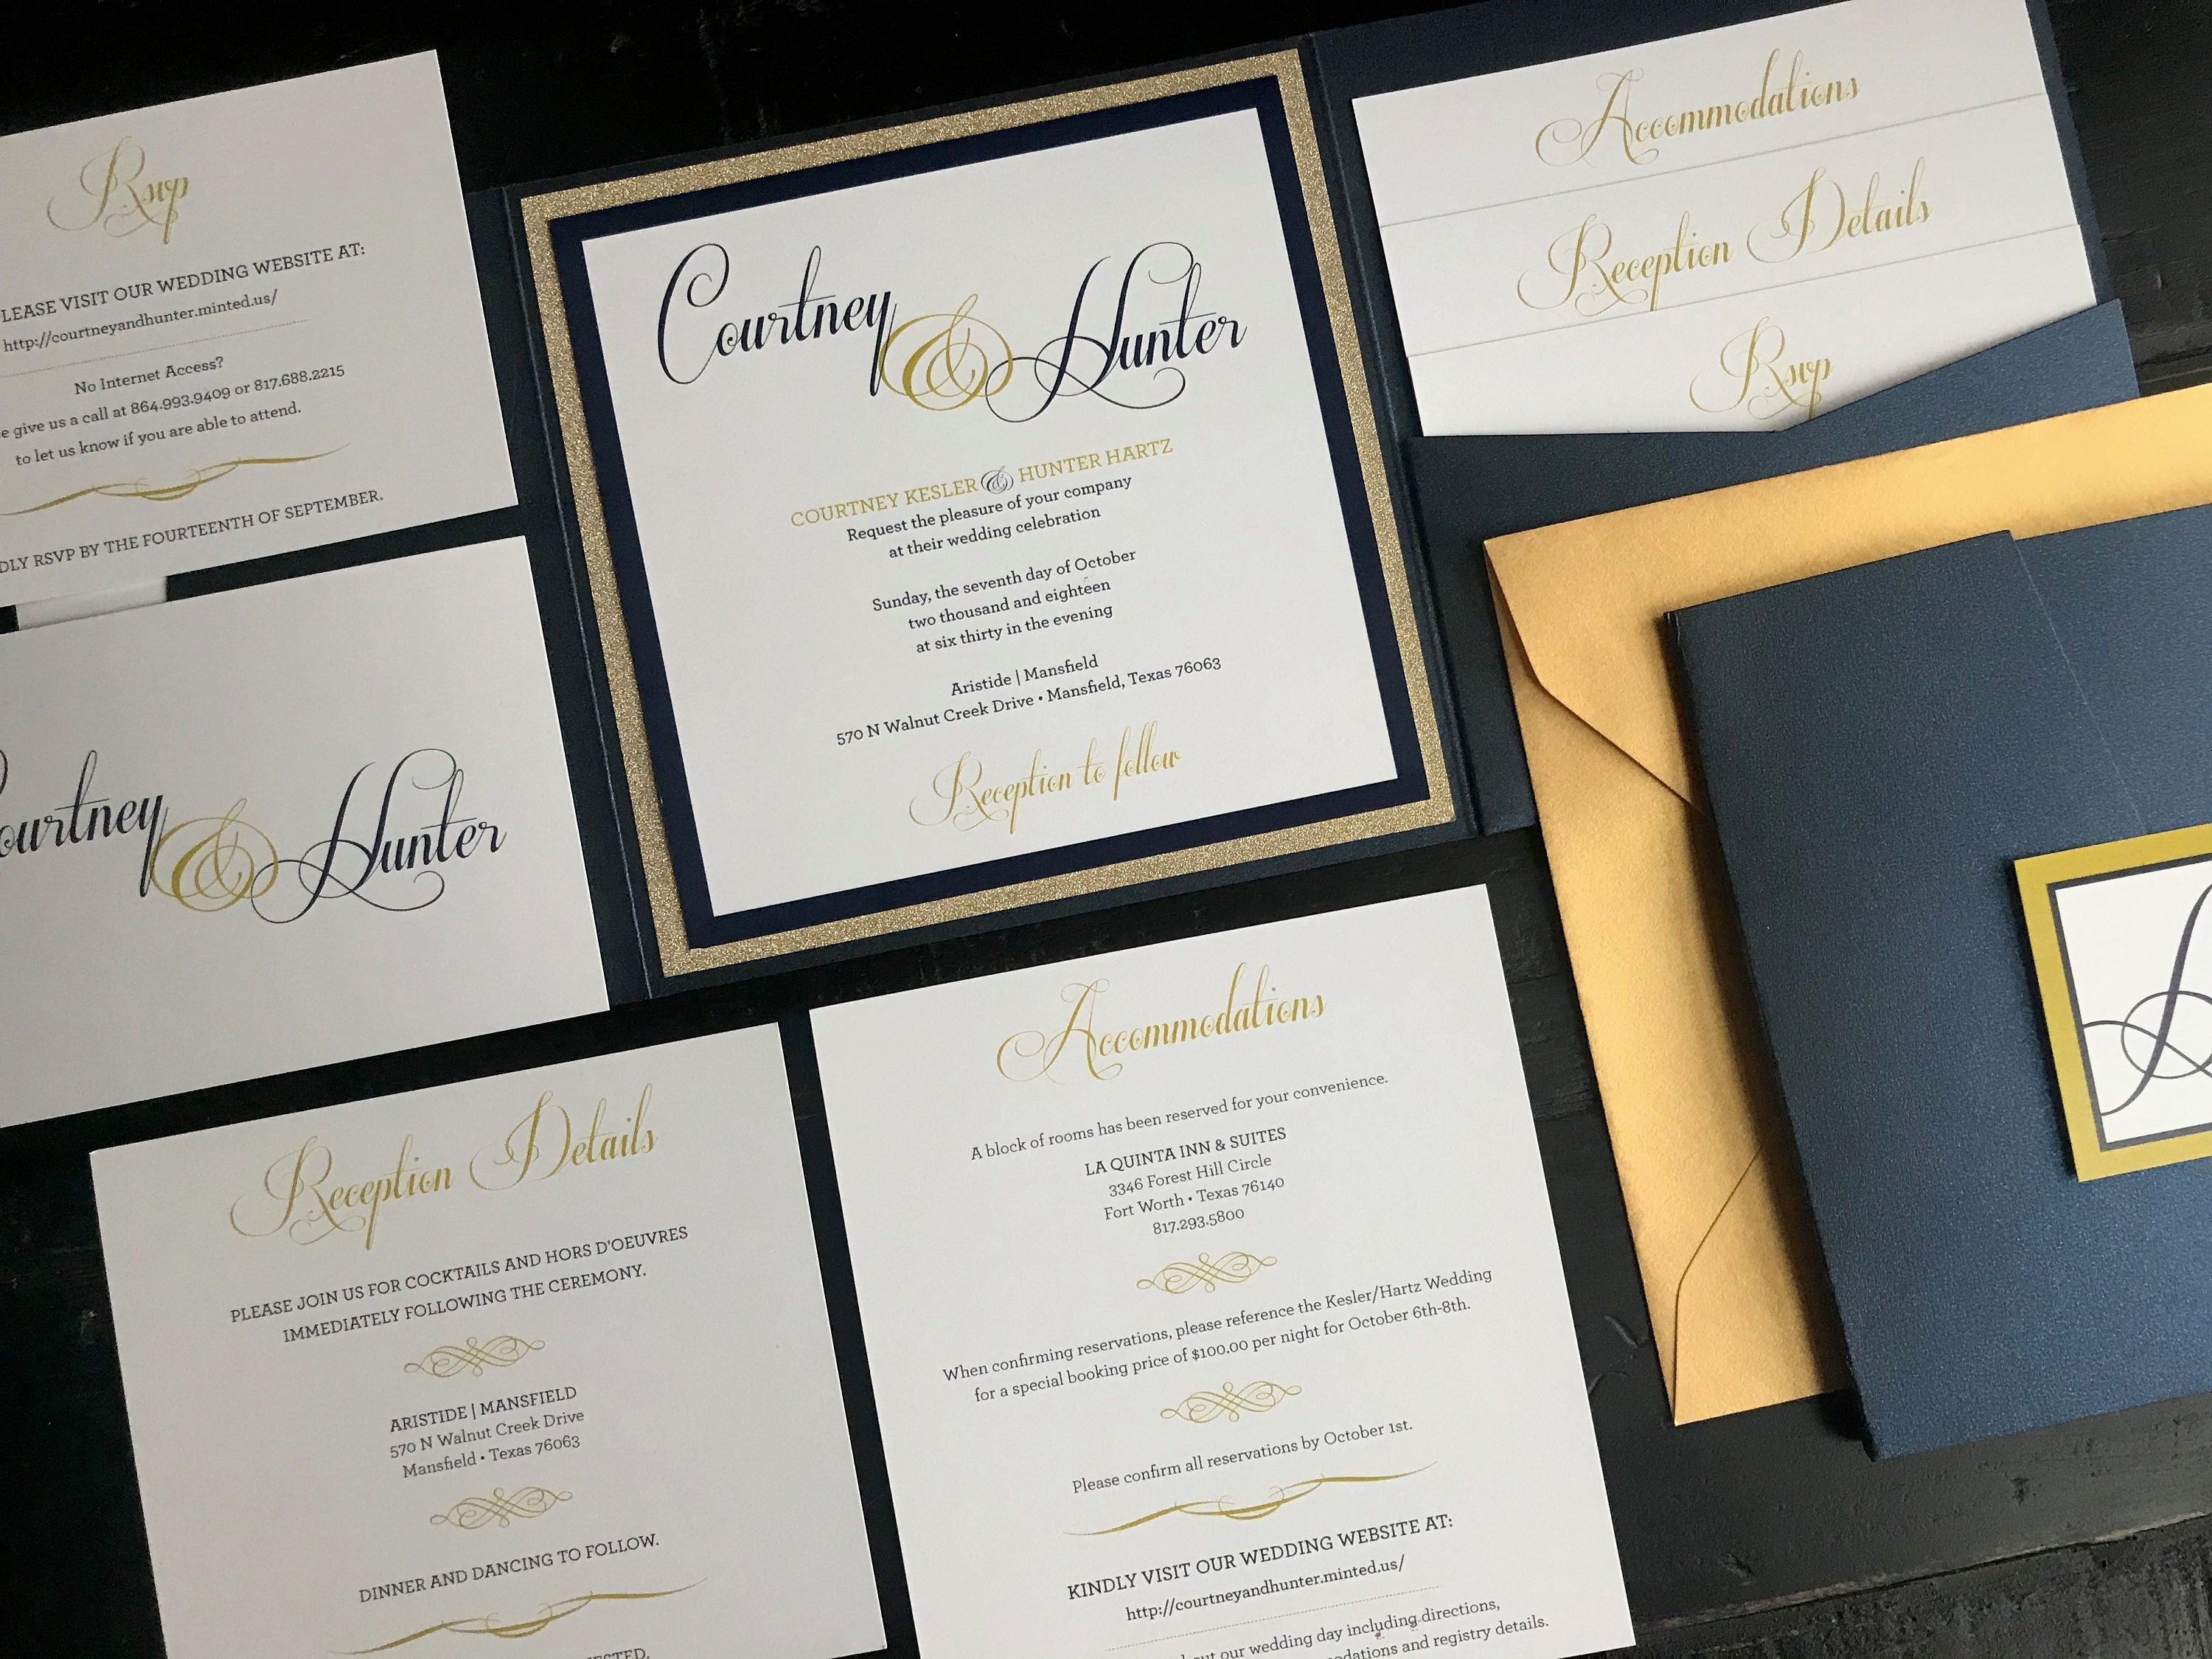 Personalized Wedding Invitations.Metallic Navy Glitter Gold Pocket Wedding Invitation Suites Personalized Wedding Announcements Invitation Suite Script Gold Blue